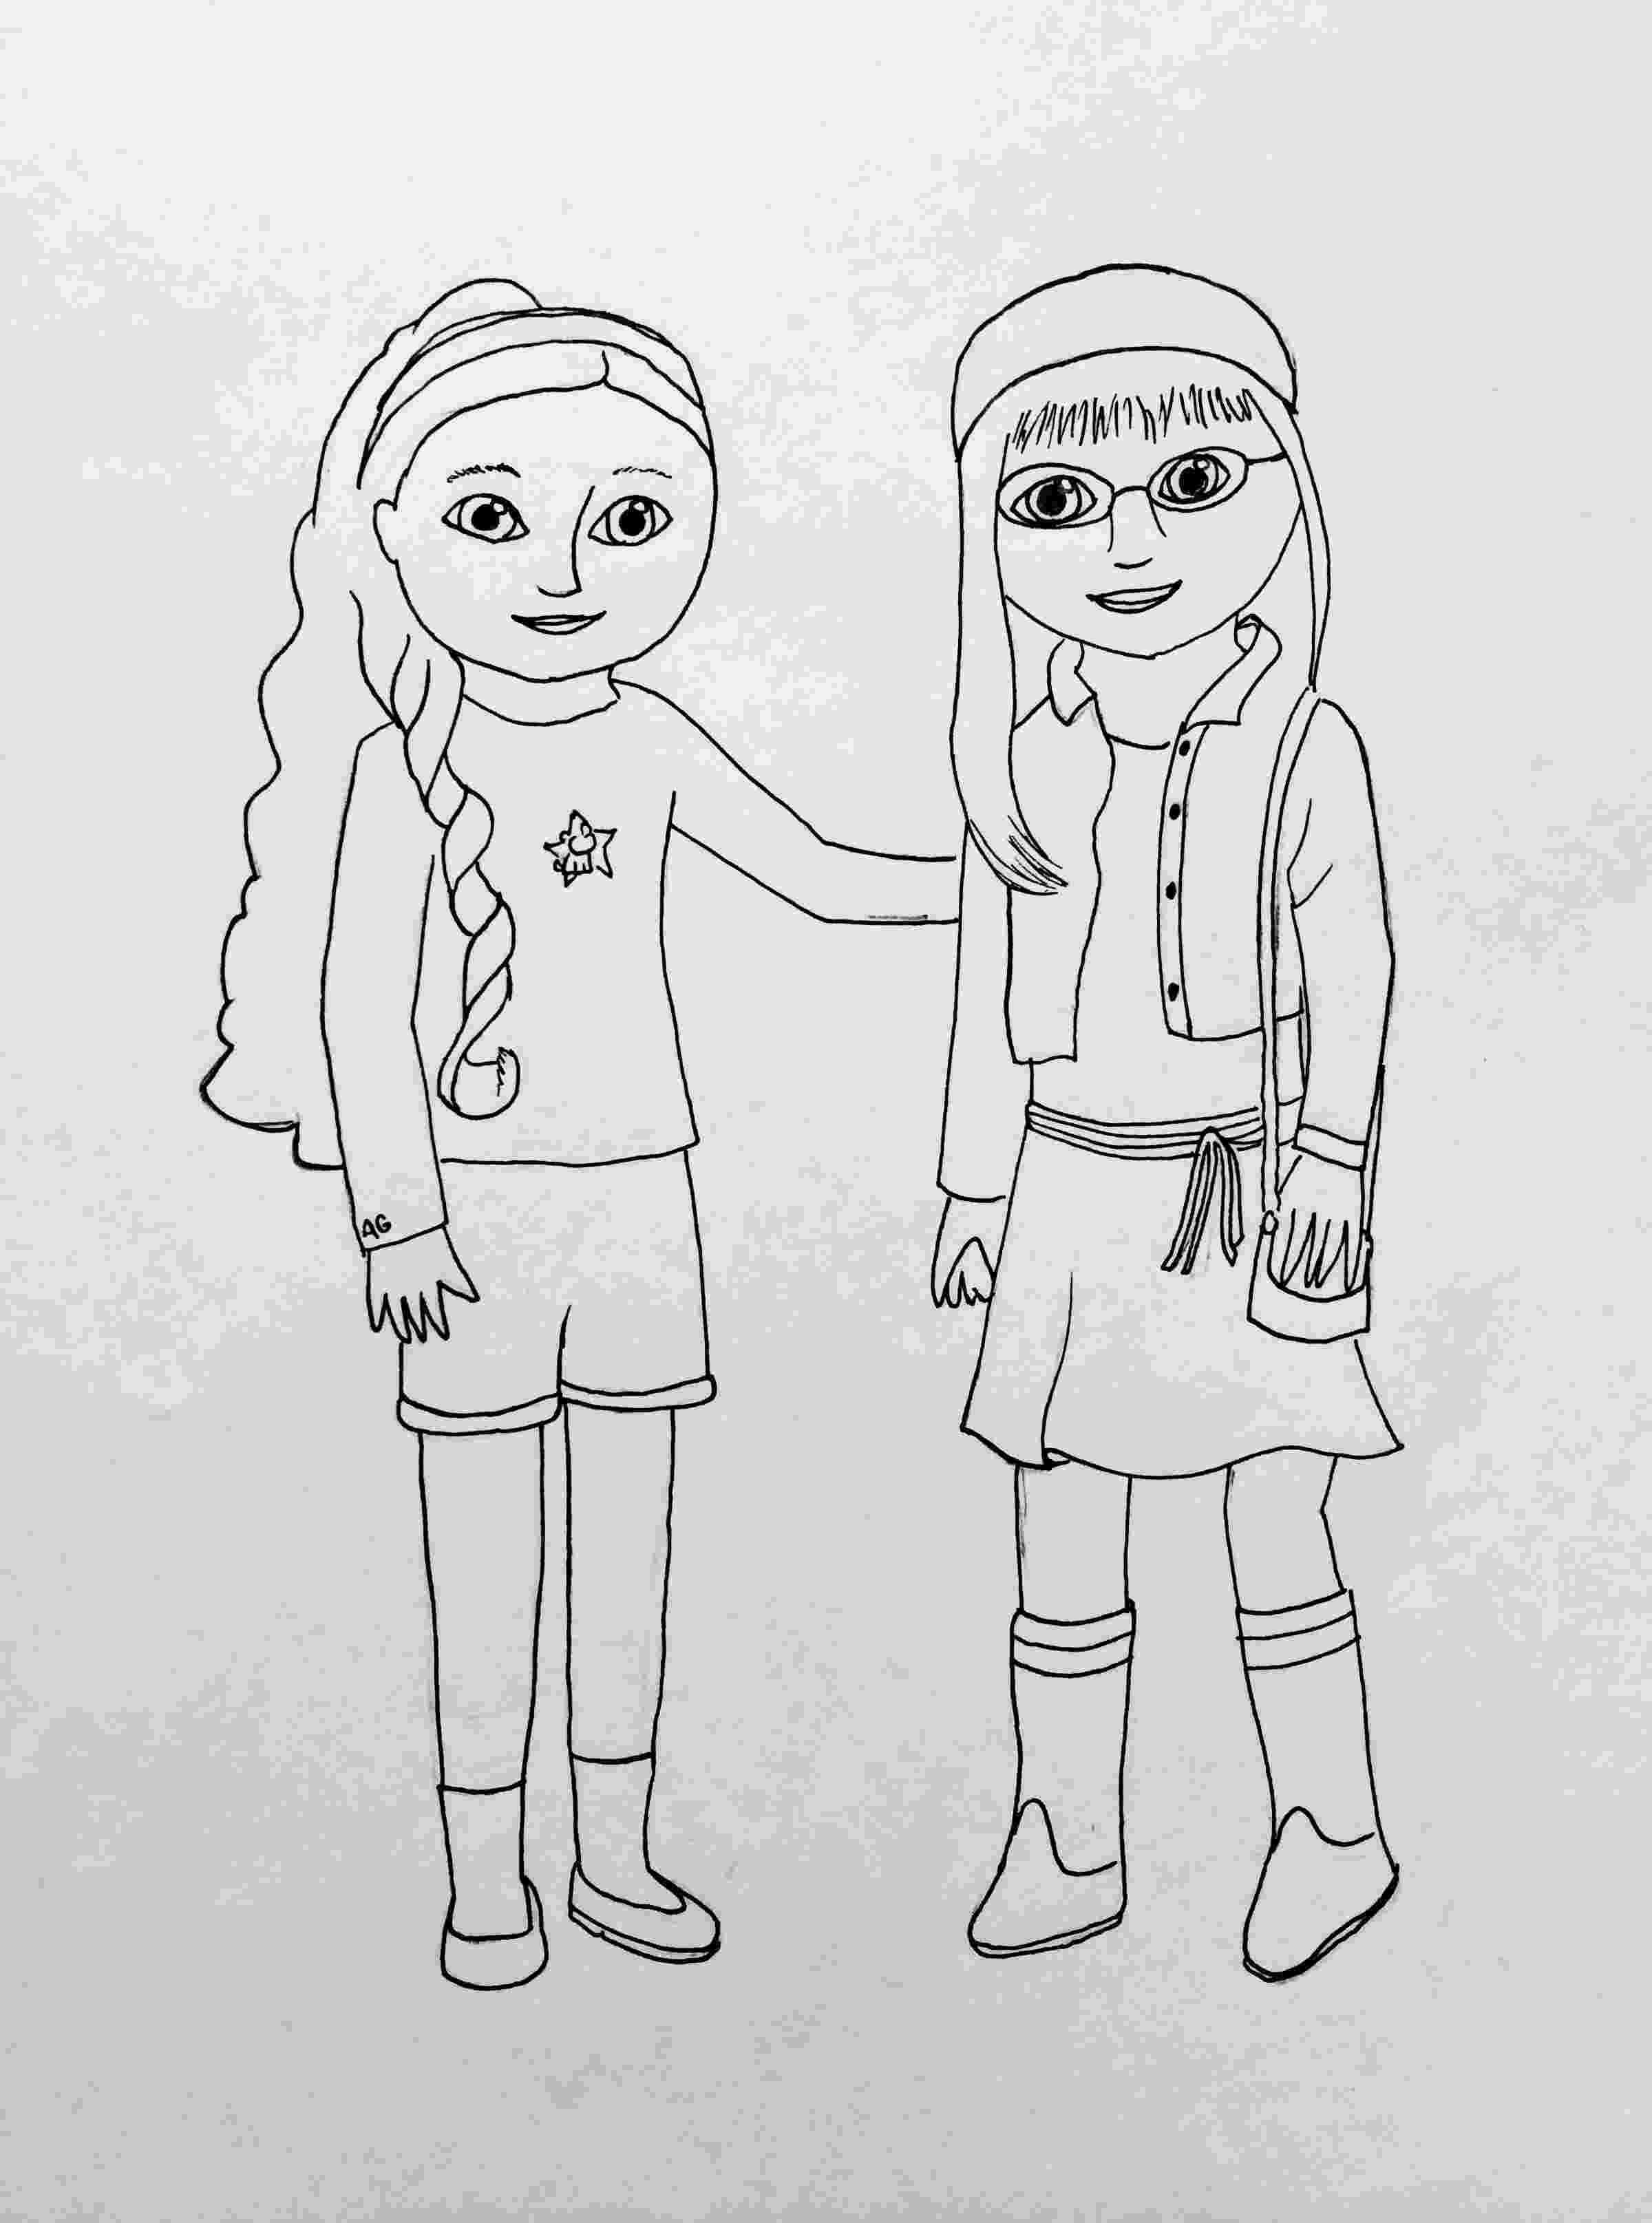 american girl doll free coloring pages american girl isabelle doll coloring page free printable coloring girl american doll free pages